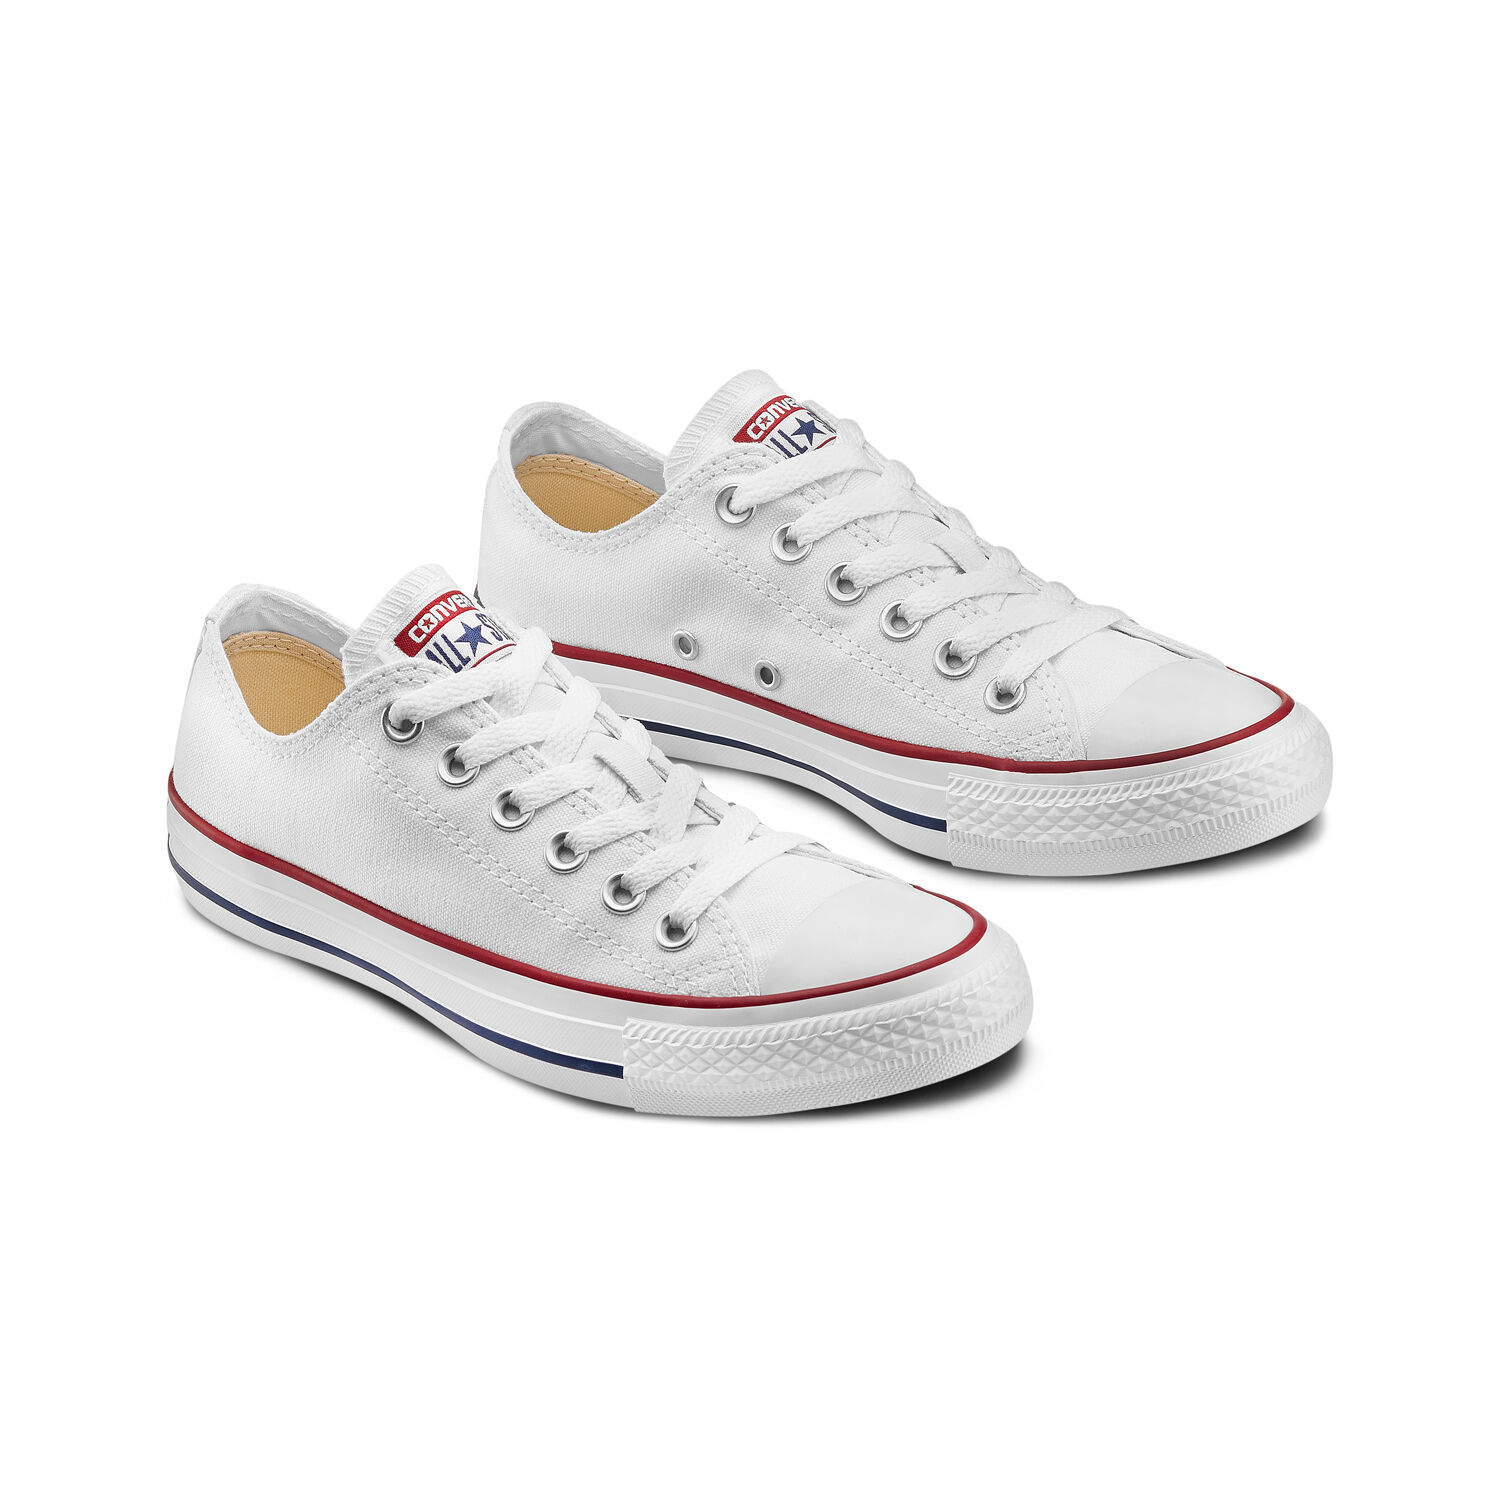 converse all star bianco